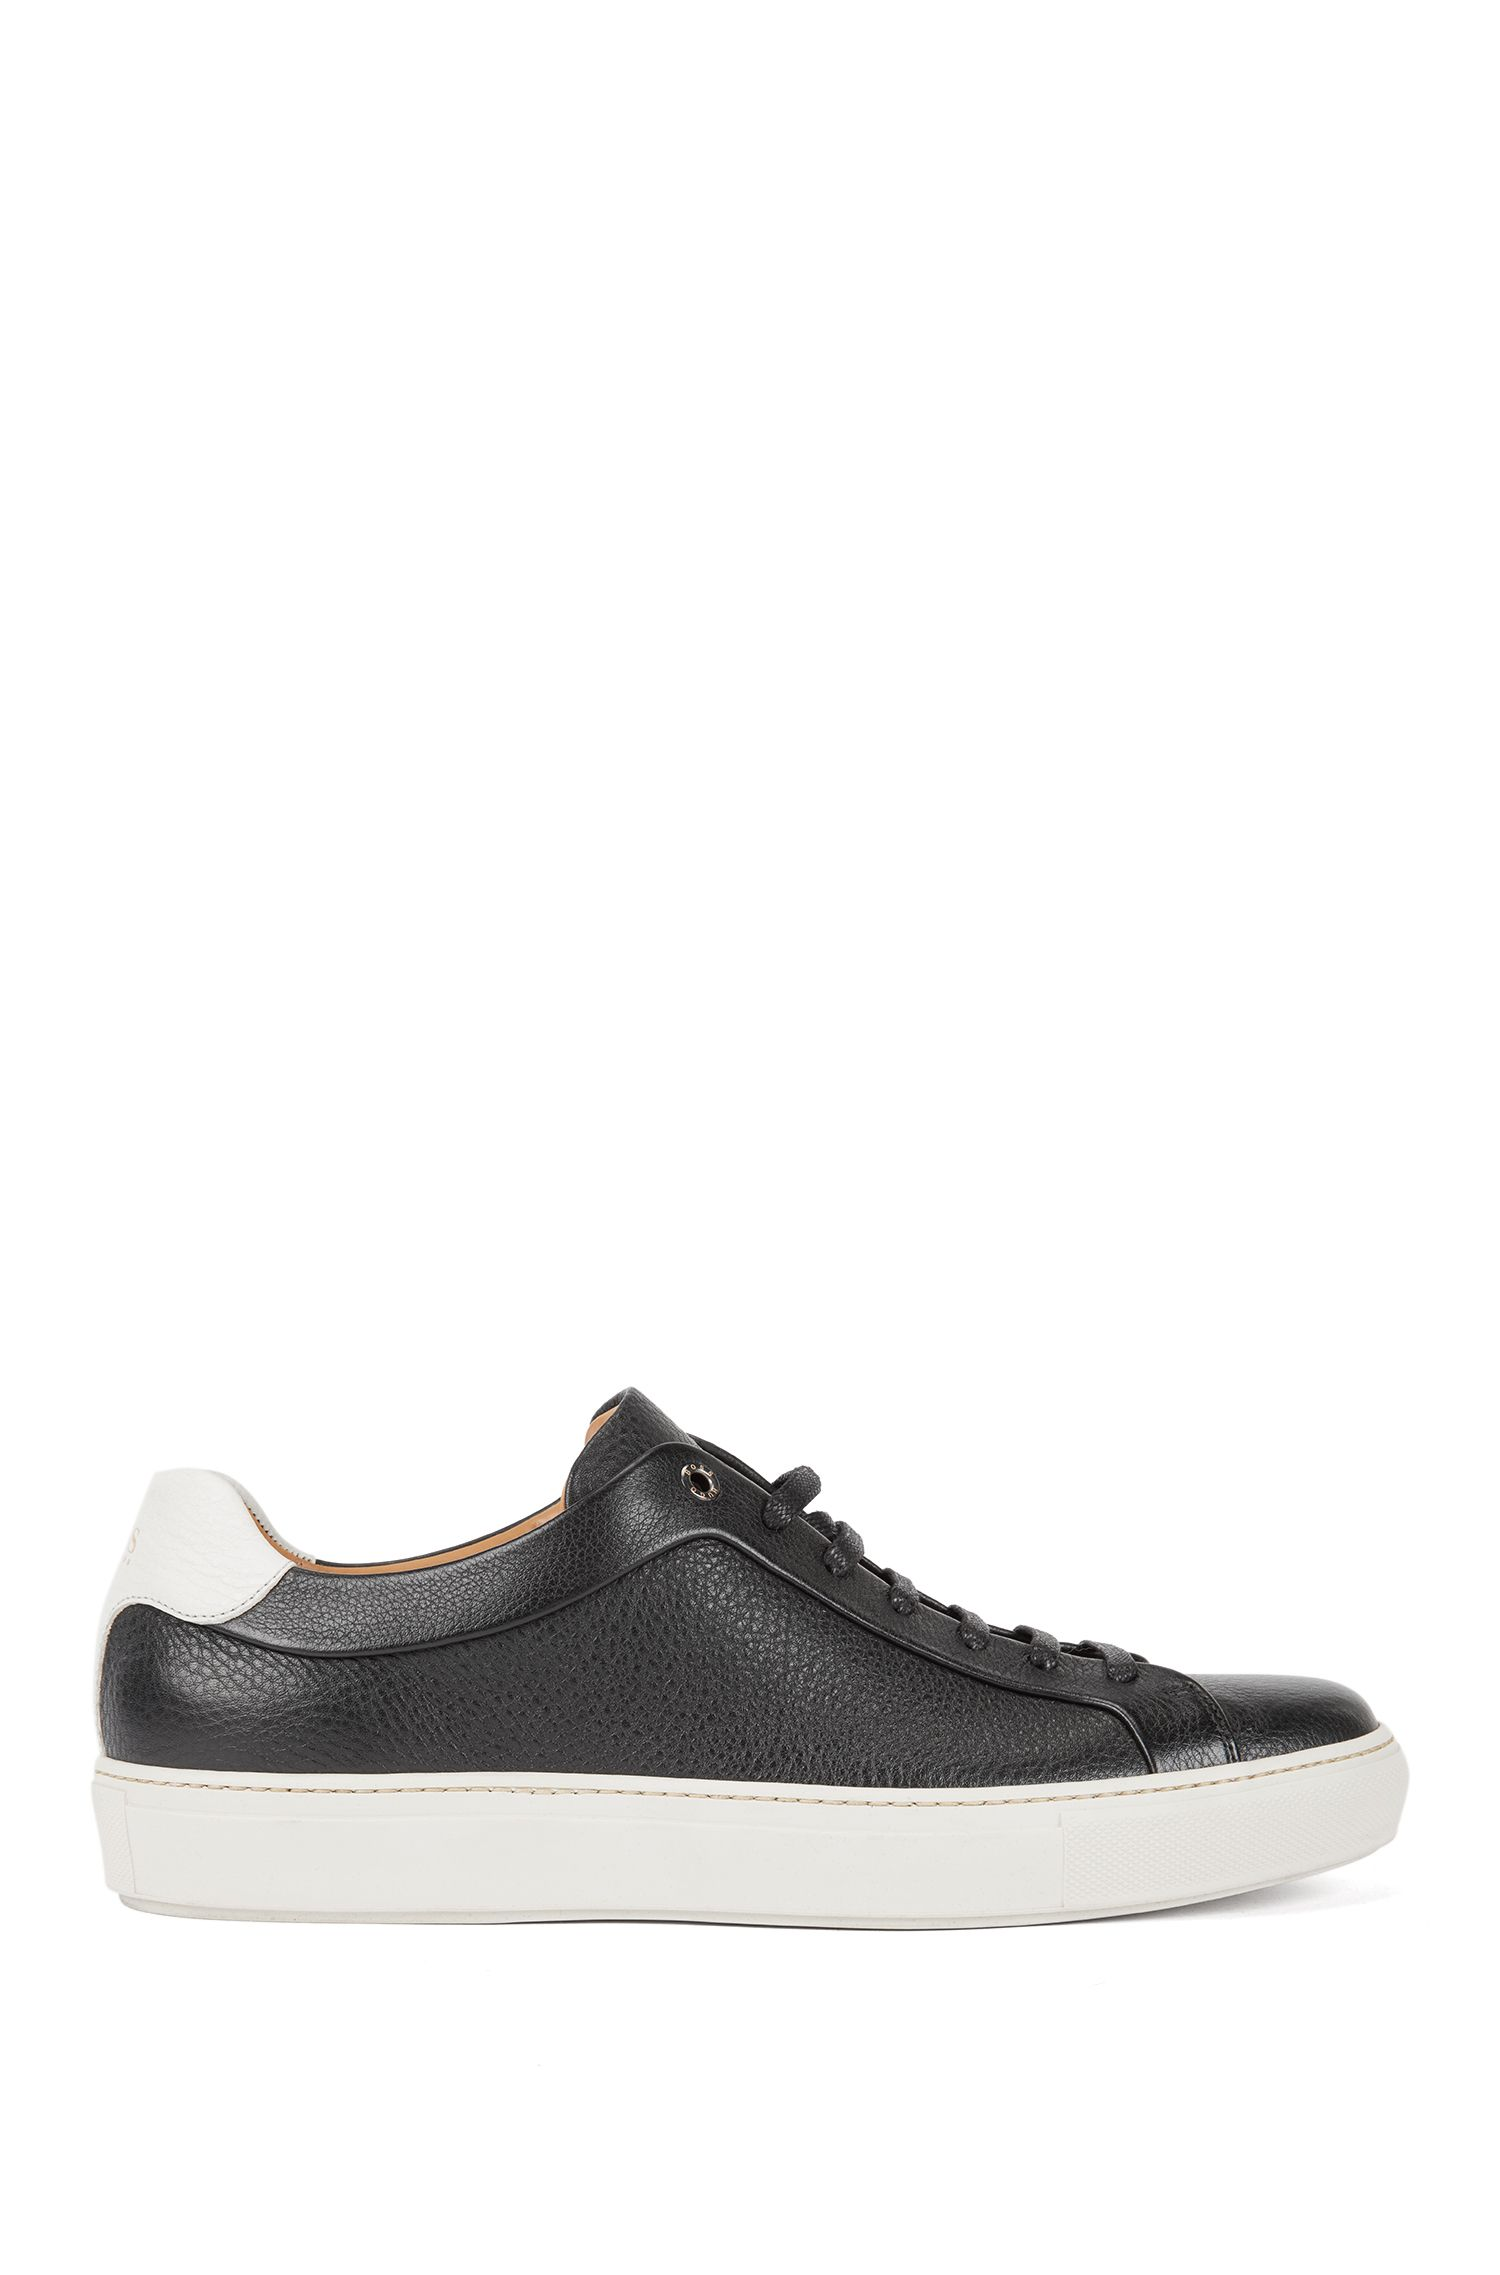 Sneakers stile tennis in pelle di vitello martellata, Nero